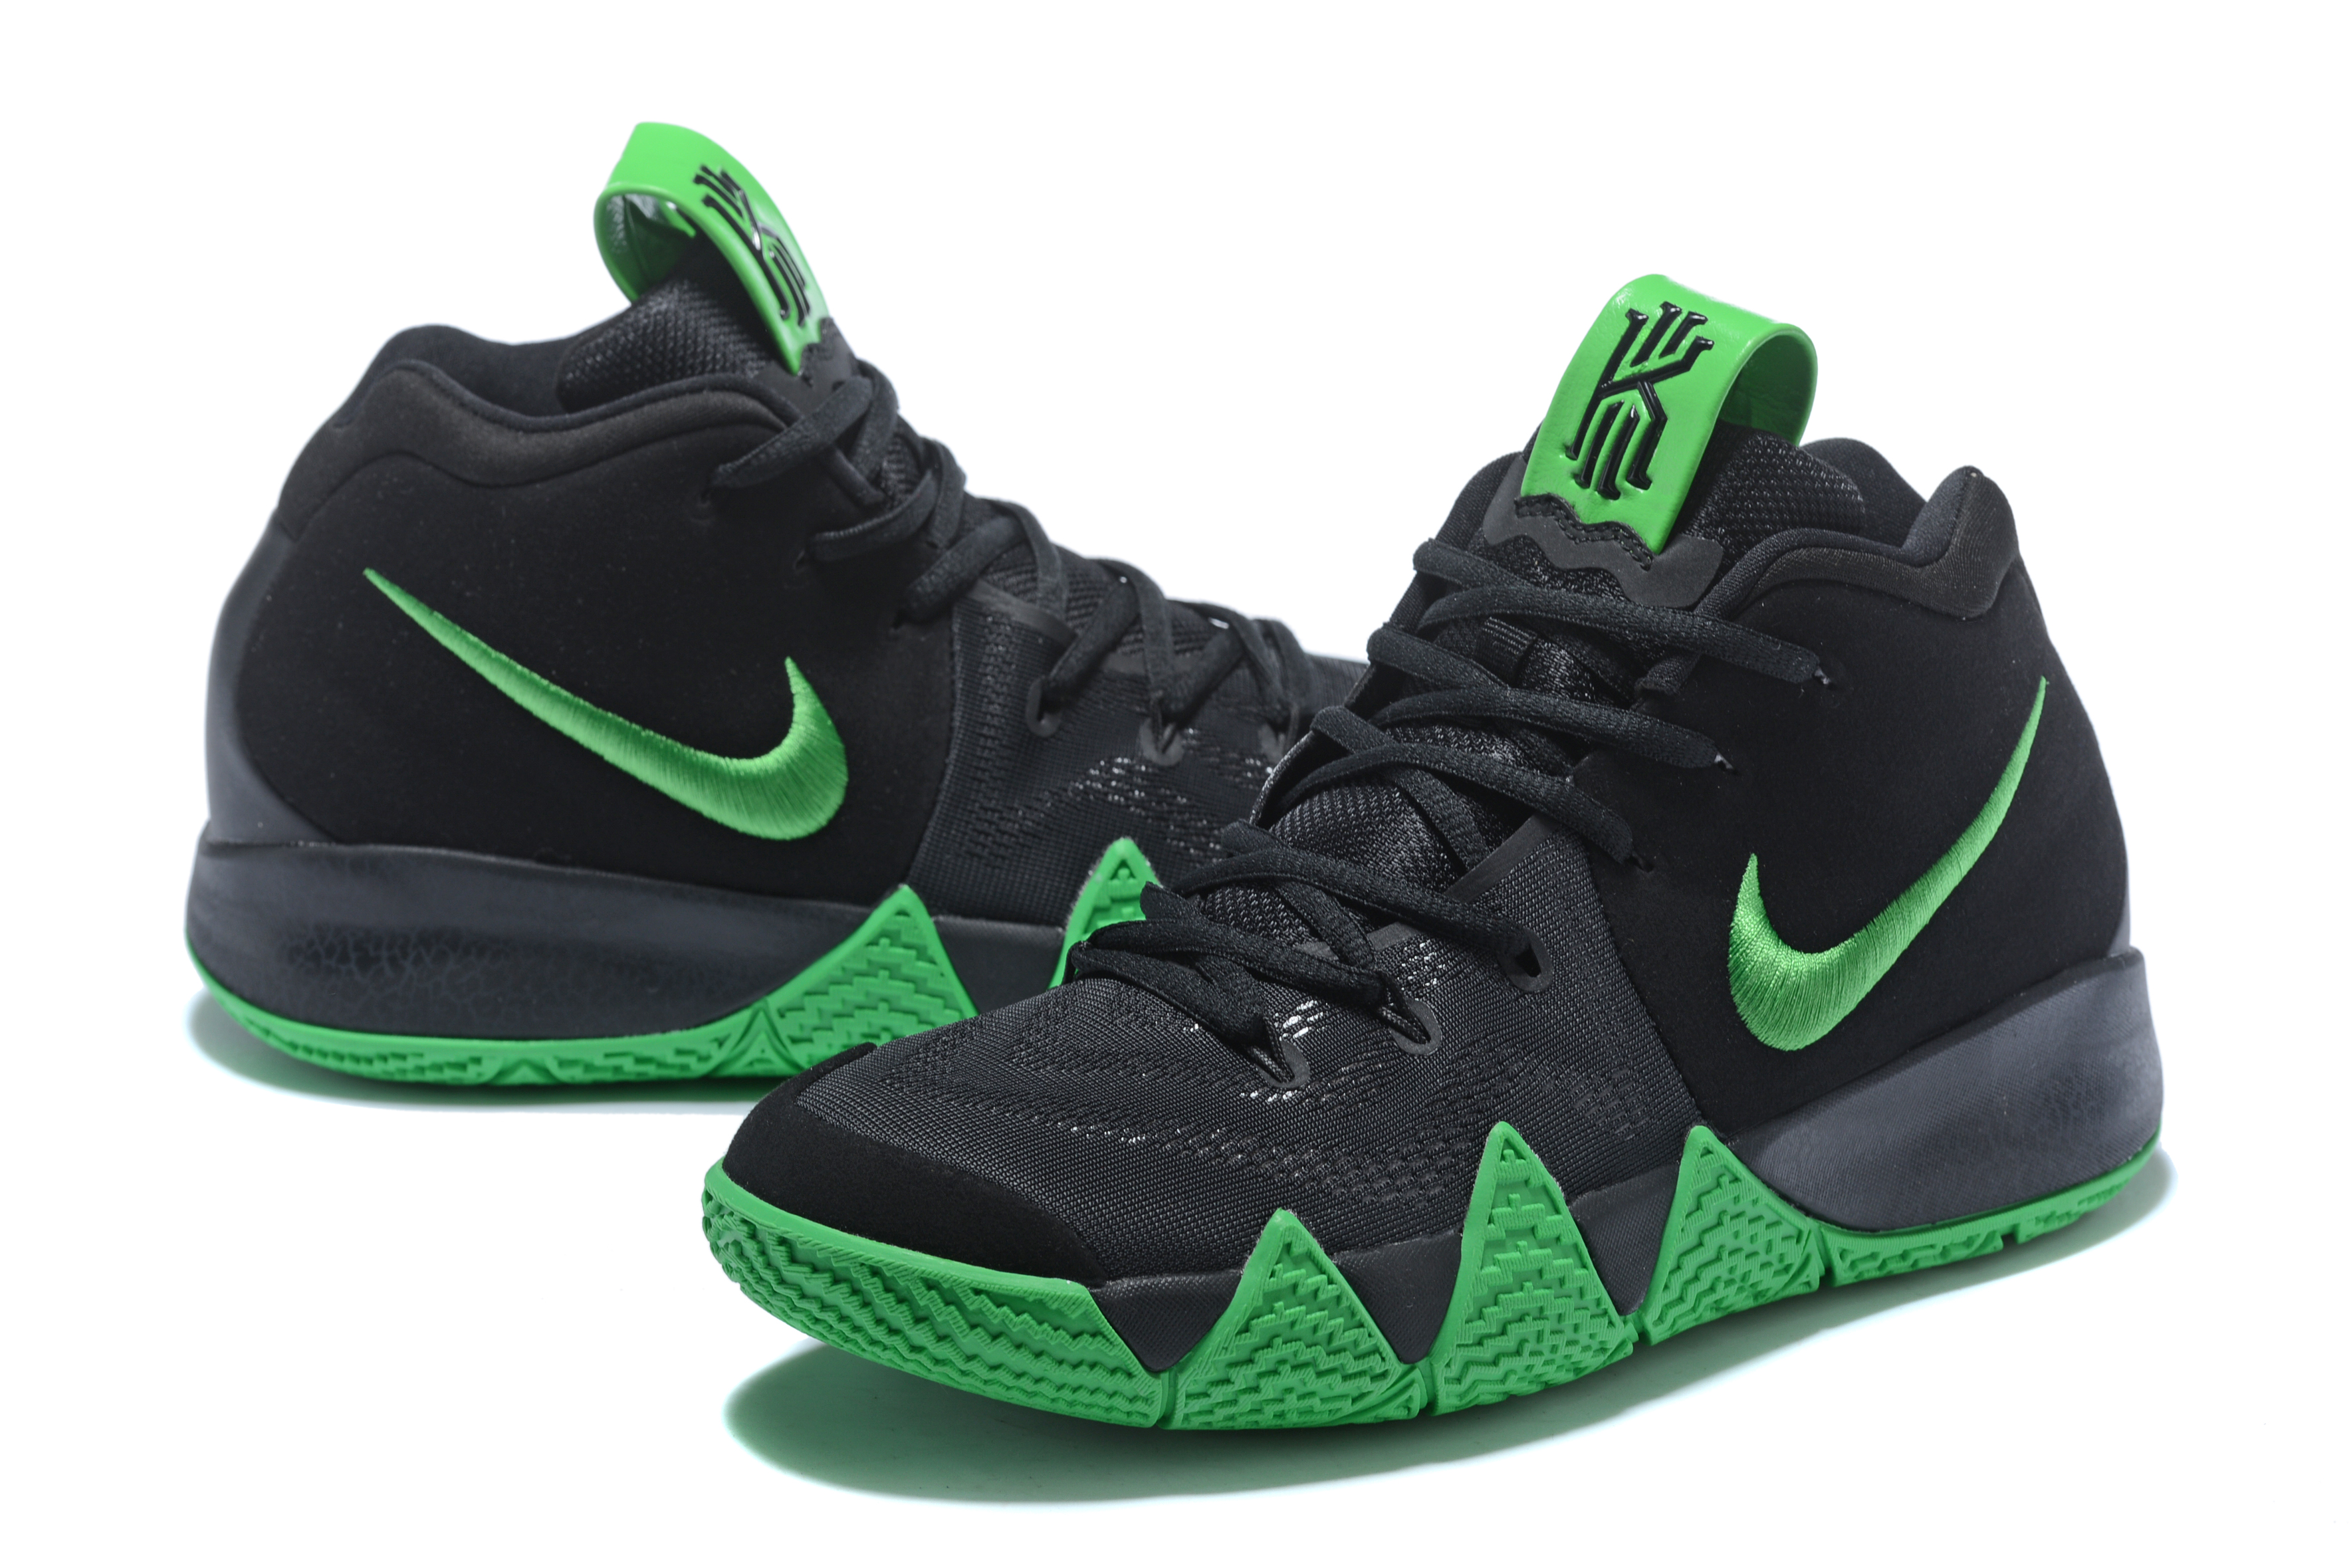 2018 Nike Kyrie Irving 4 Black Green Shoes